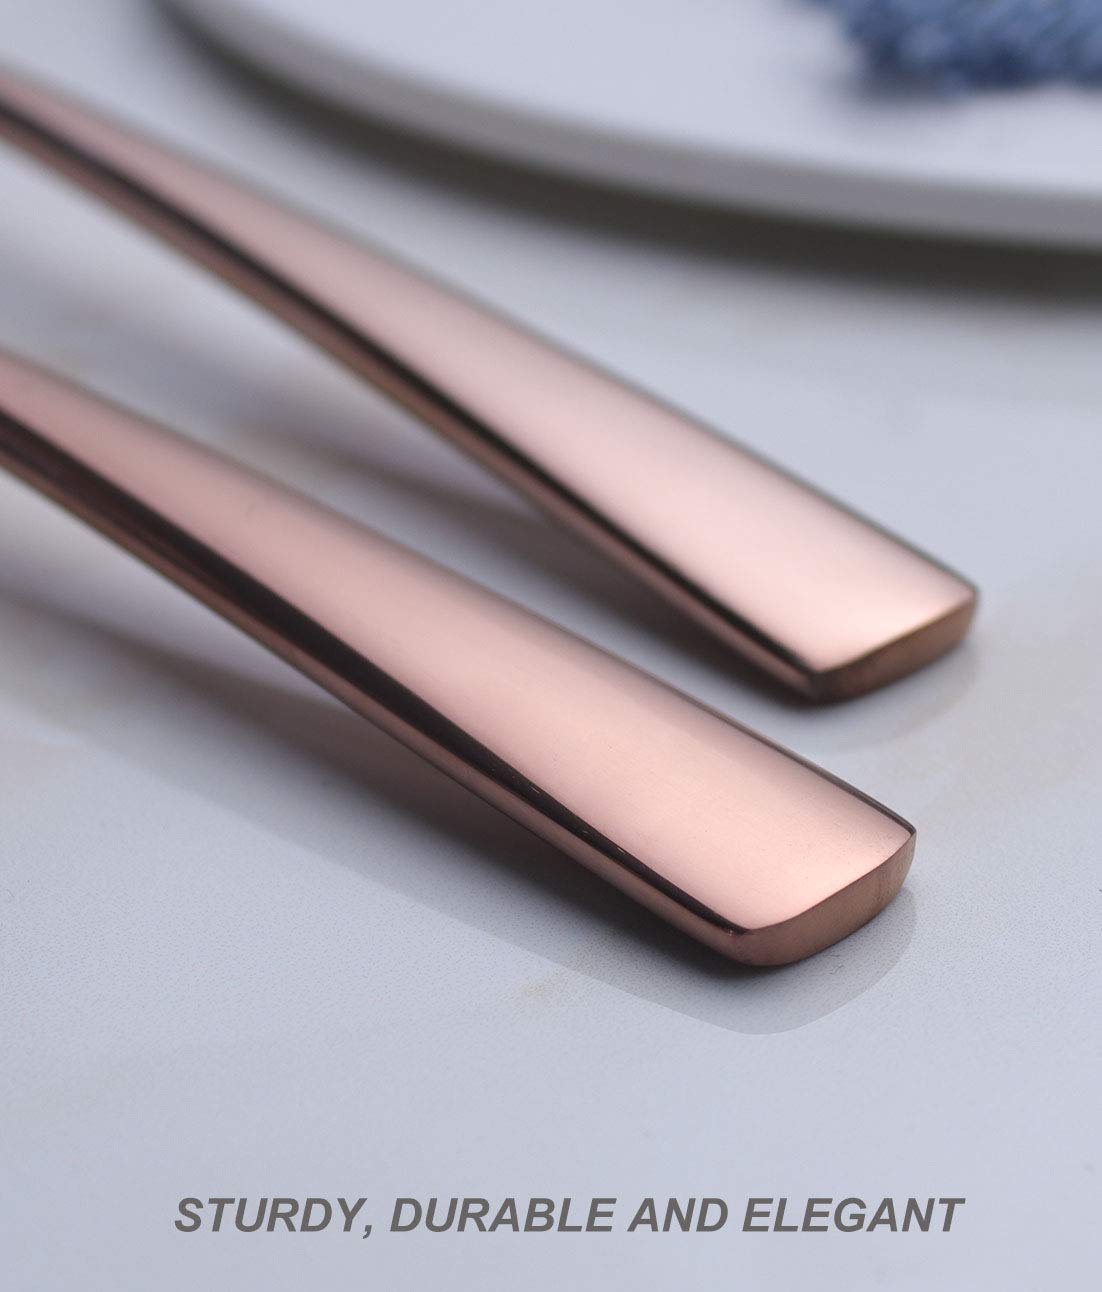 Dinner Dessert Spoon Set Rose Gold 6 Piece 18//8 Stainless Steel 7.6 inch Oval Bowl Bouillon Soup Spoons Service for 6 Silverware Flatware Utensils Dinner Dishwasher Safe Mirror Polished by OMGard